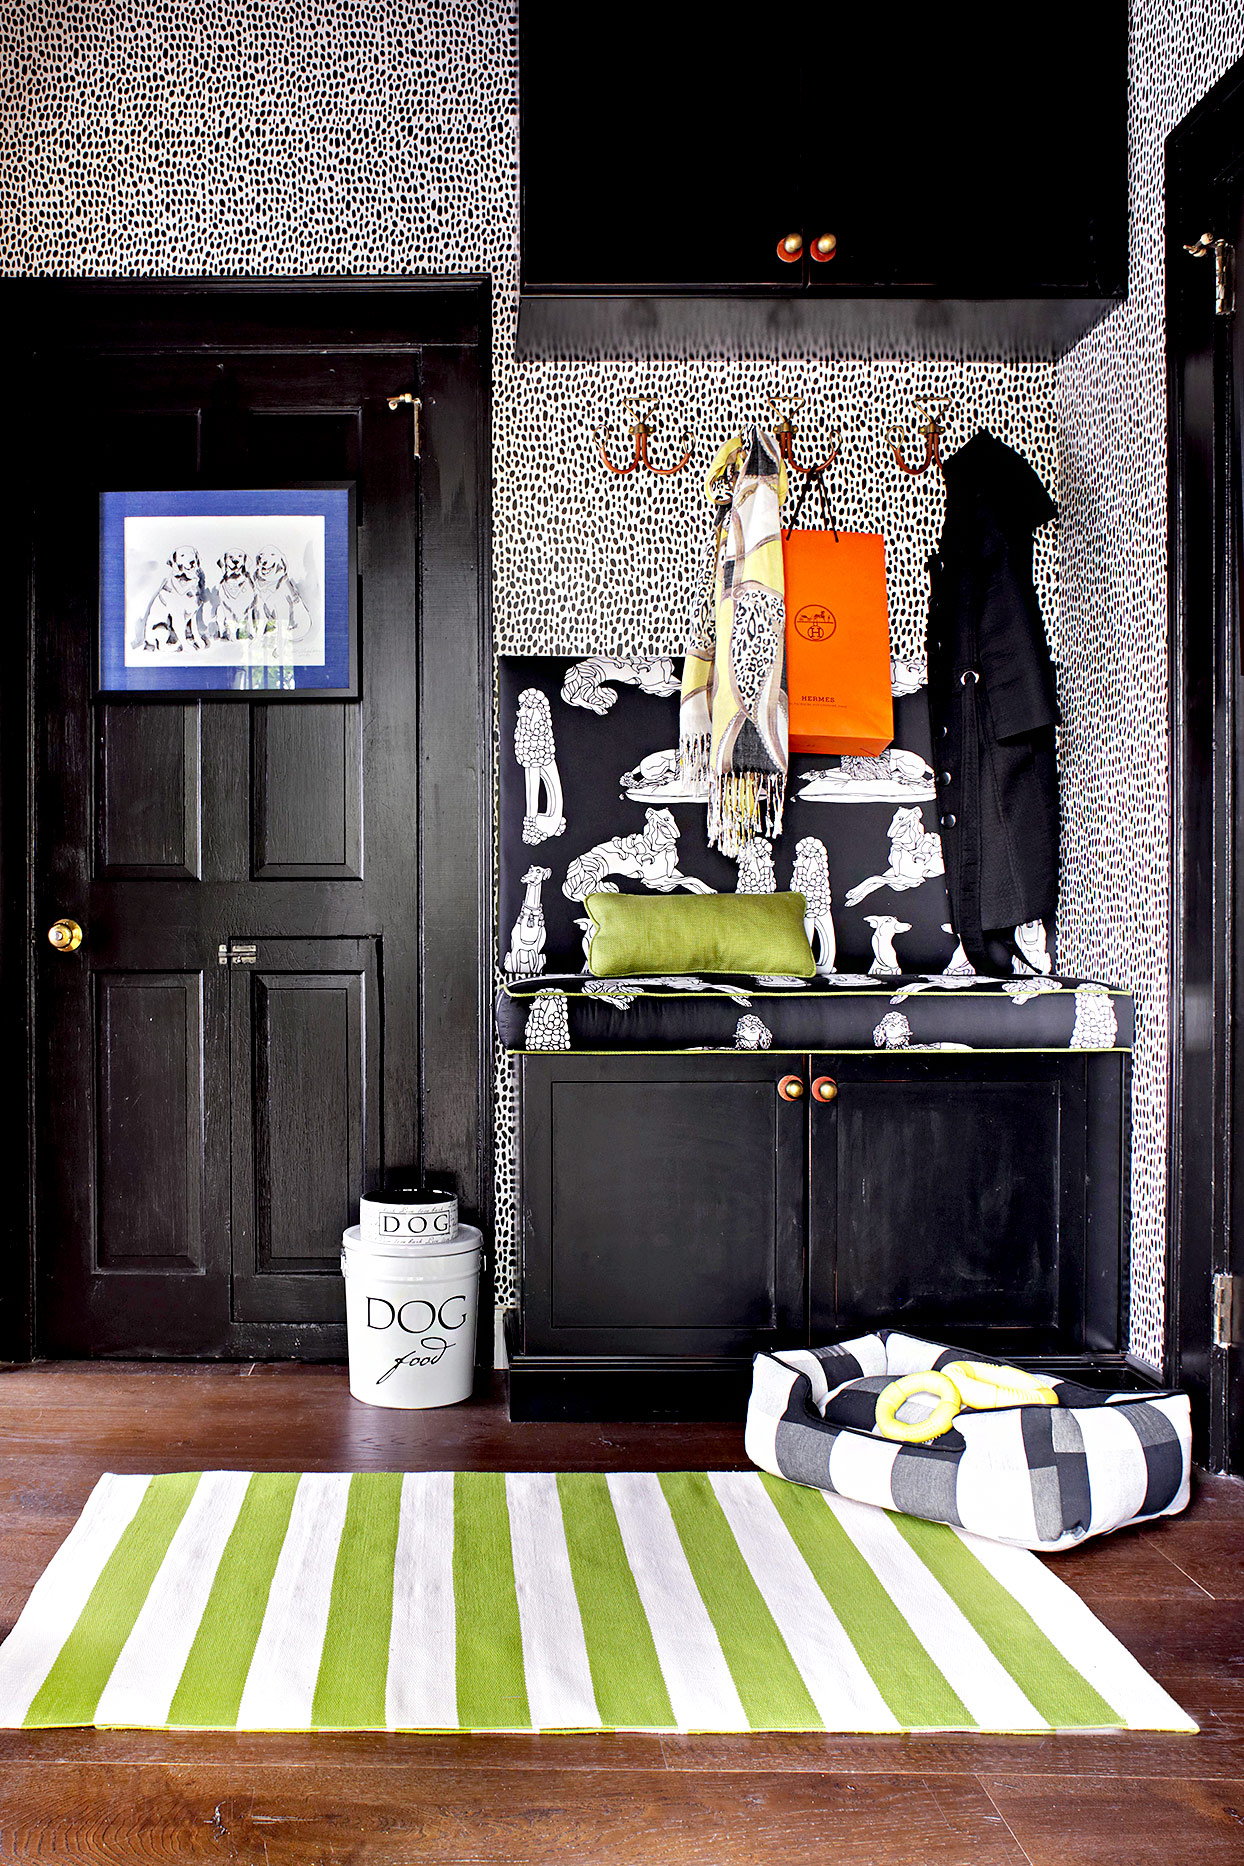 Black cabinets and patterned wall paper with dog accessories